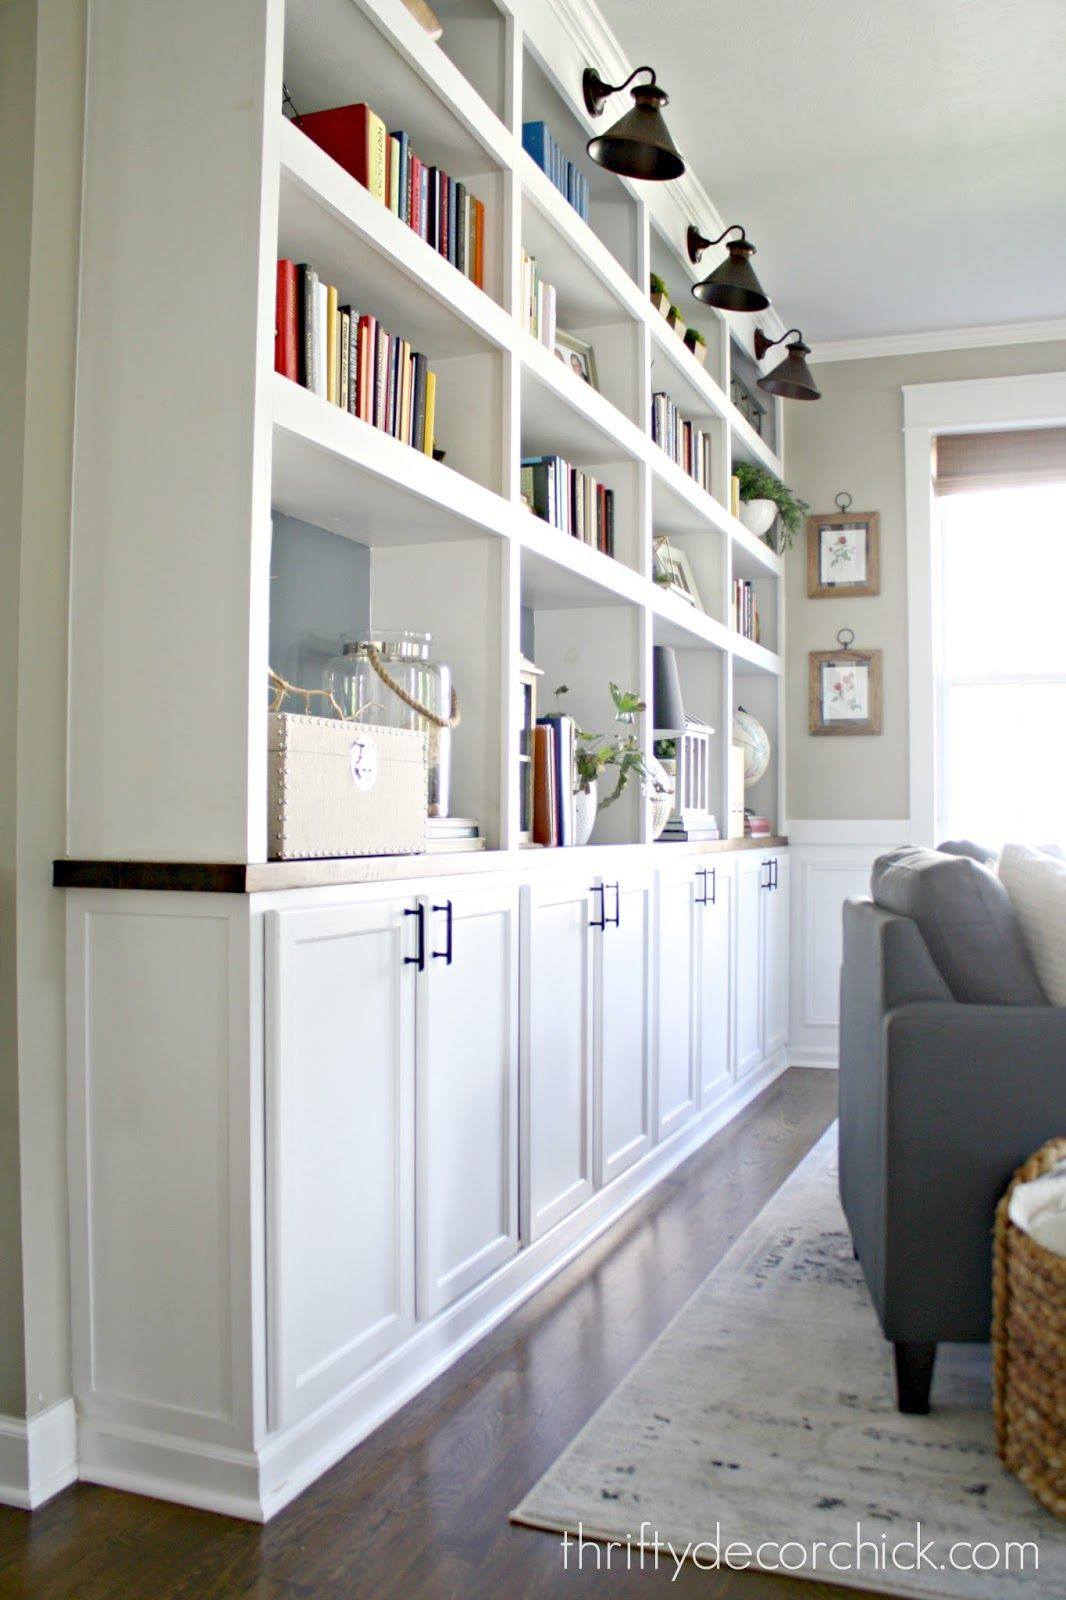 How to create custom built ins with kitchen cabinets | Office built ...